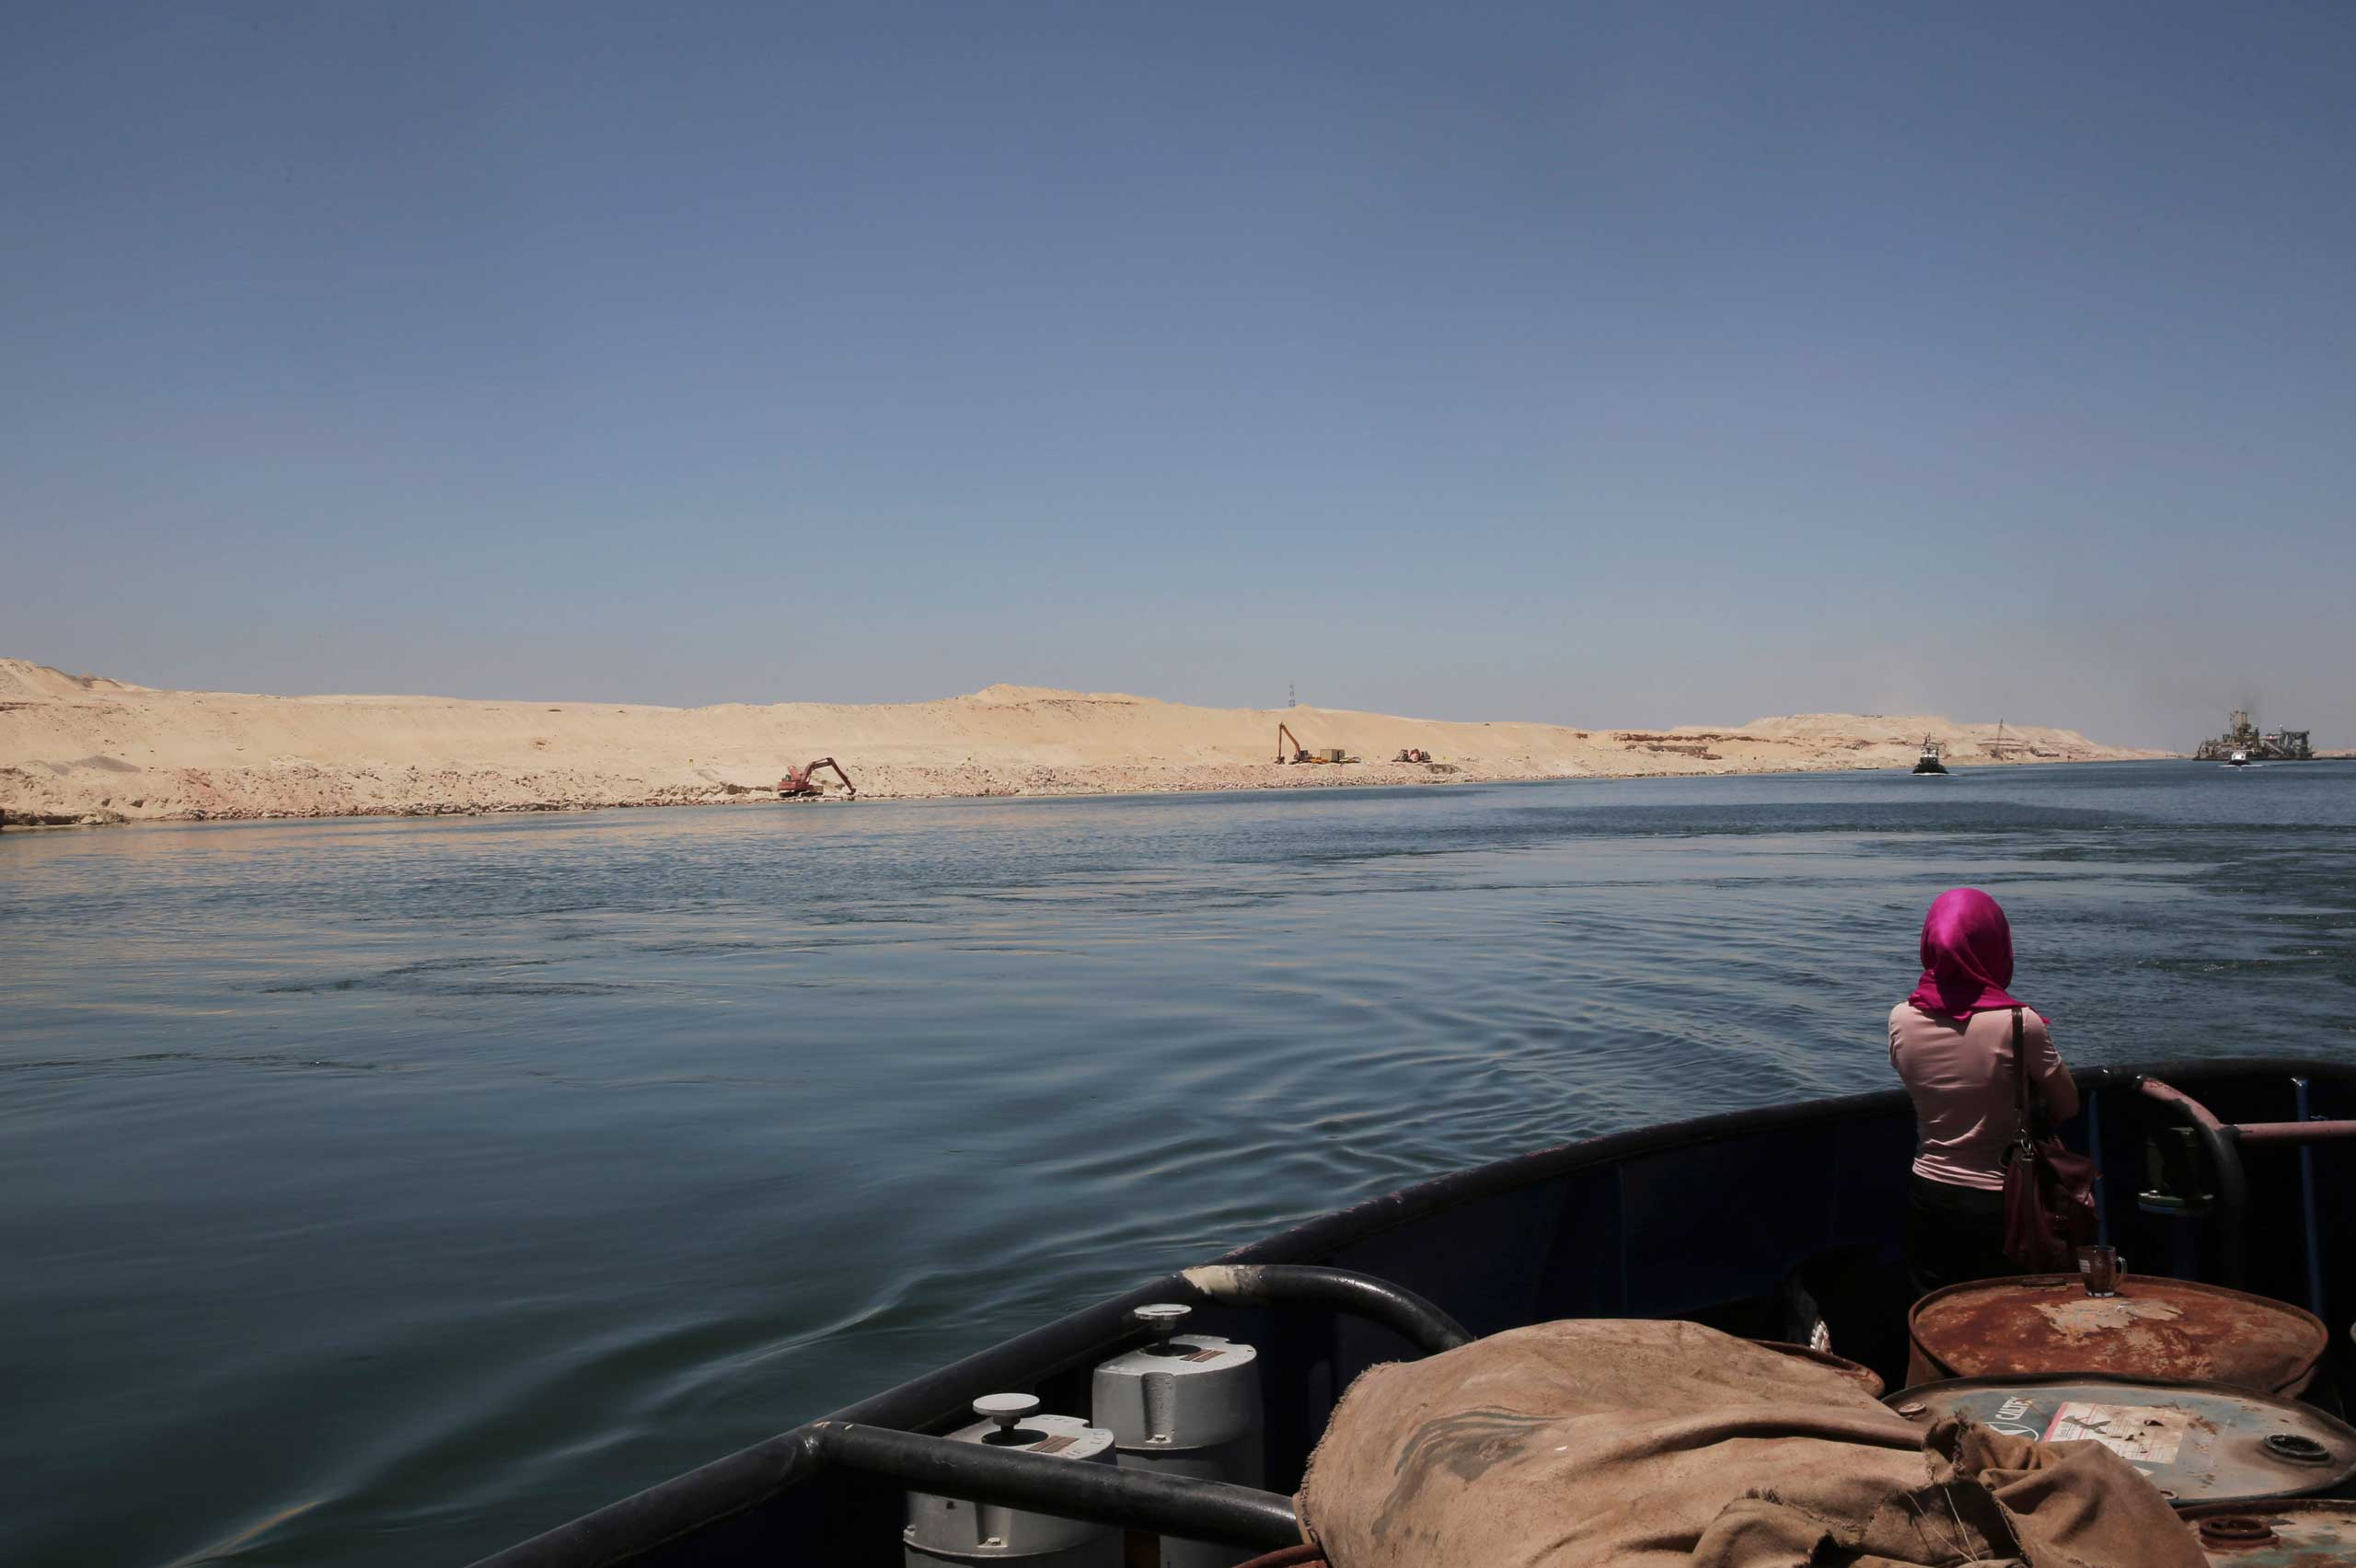 A woman looks at a new section of the Suez Canal during a media tour in Ismailia, Egypt, on July 29, 2015.